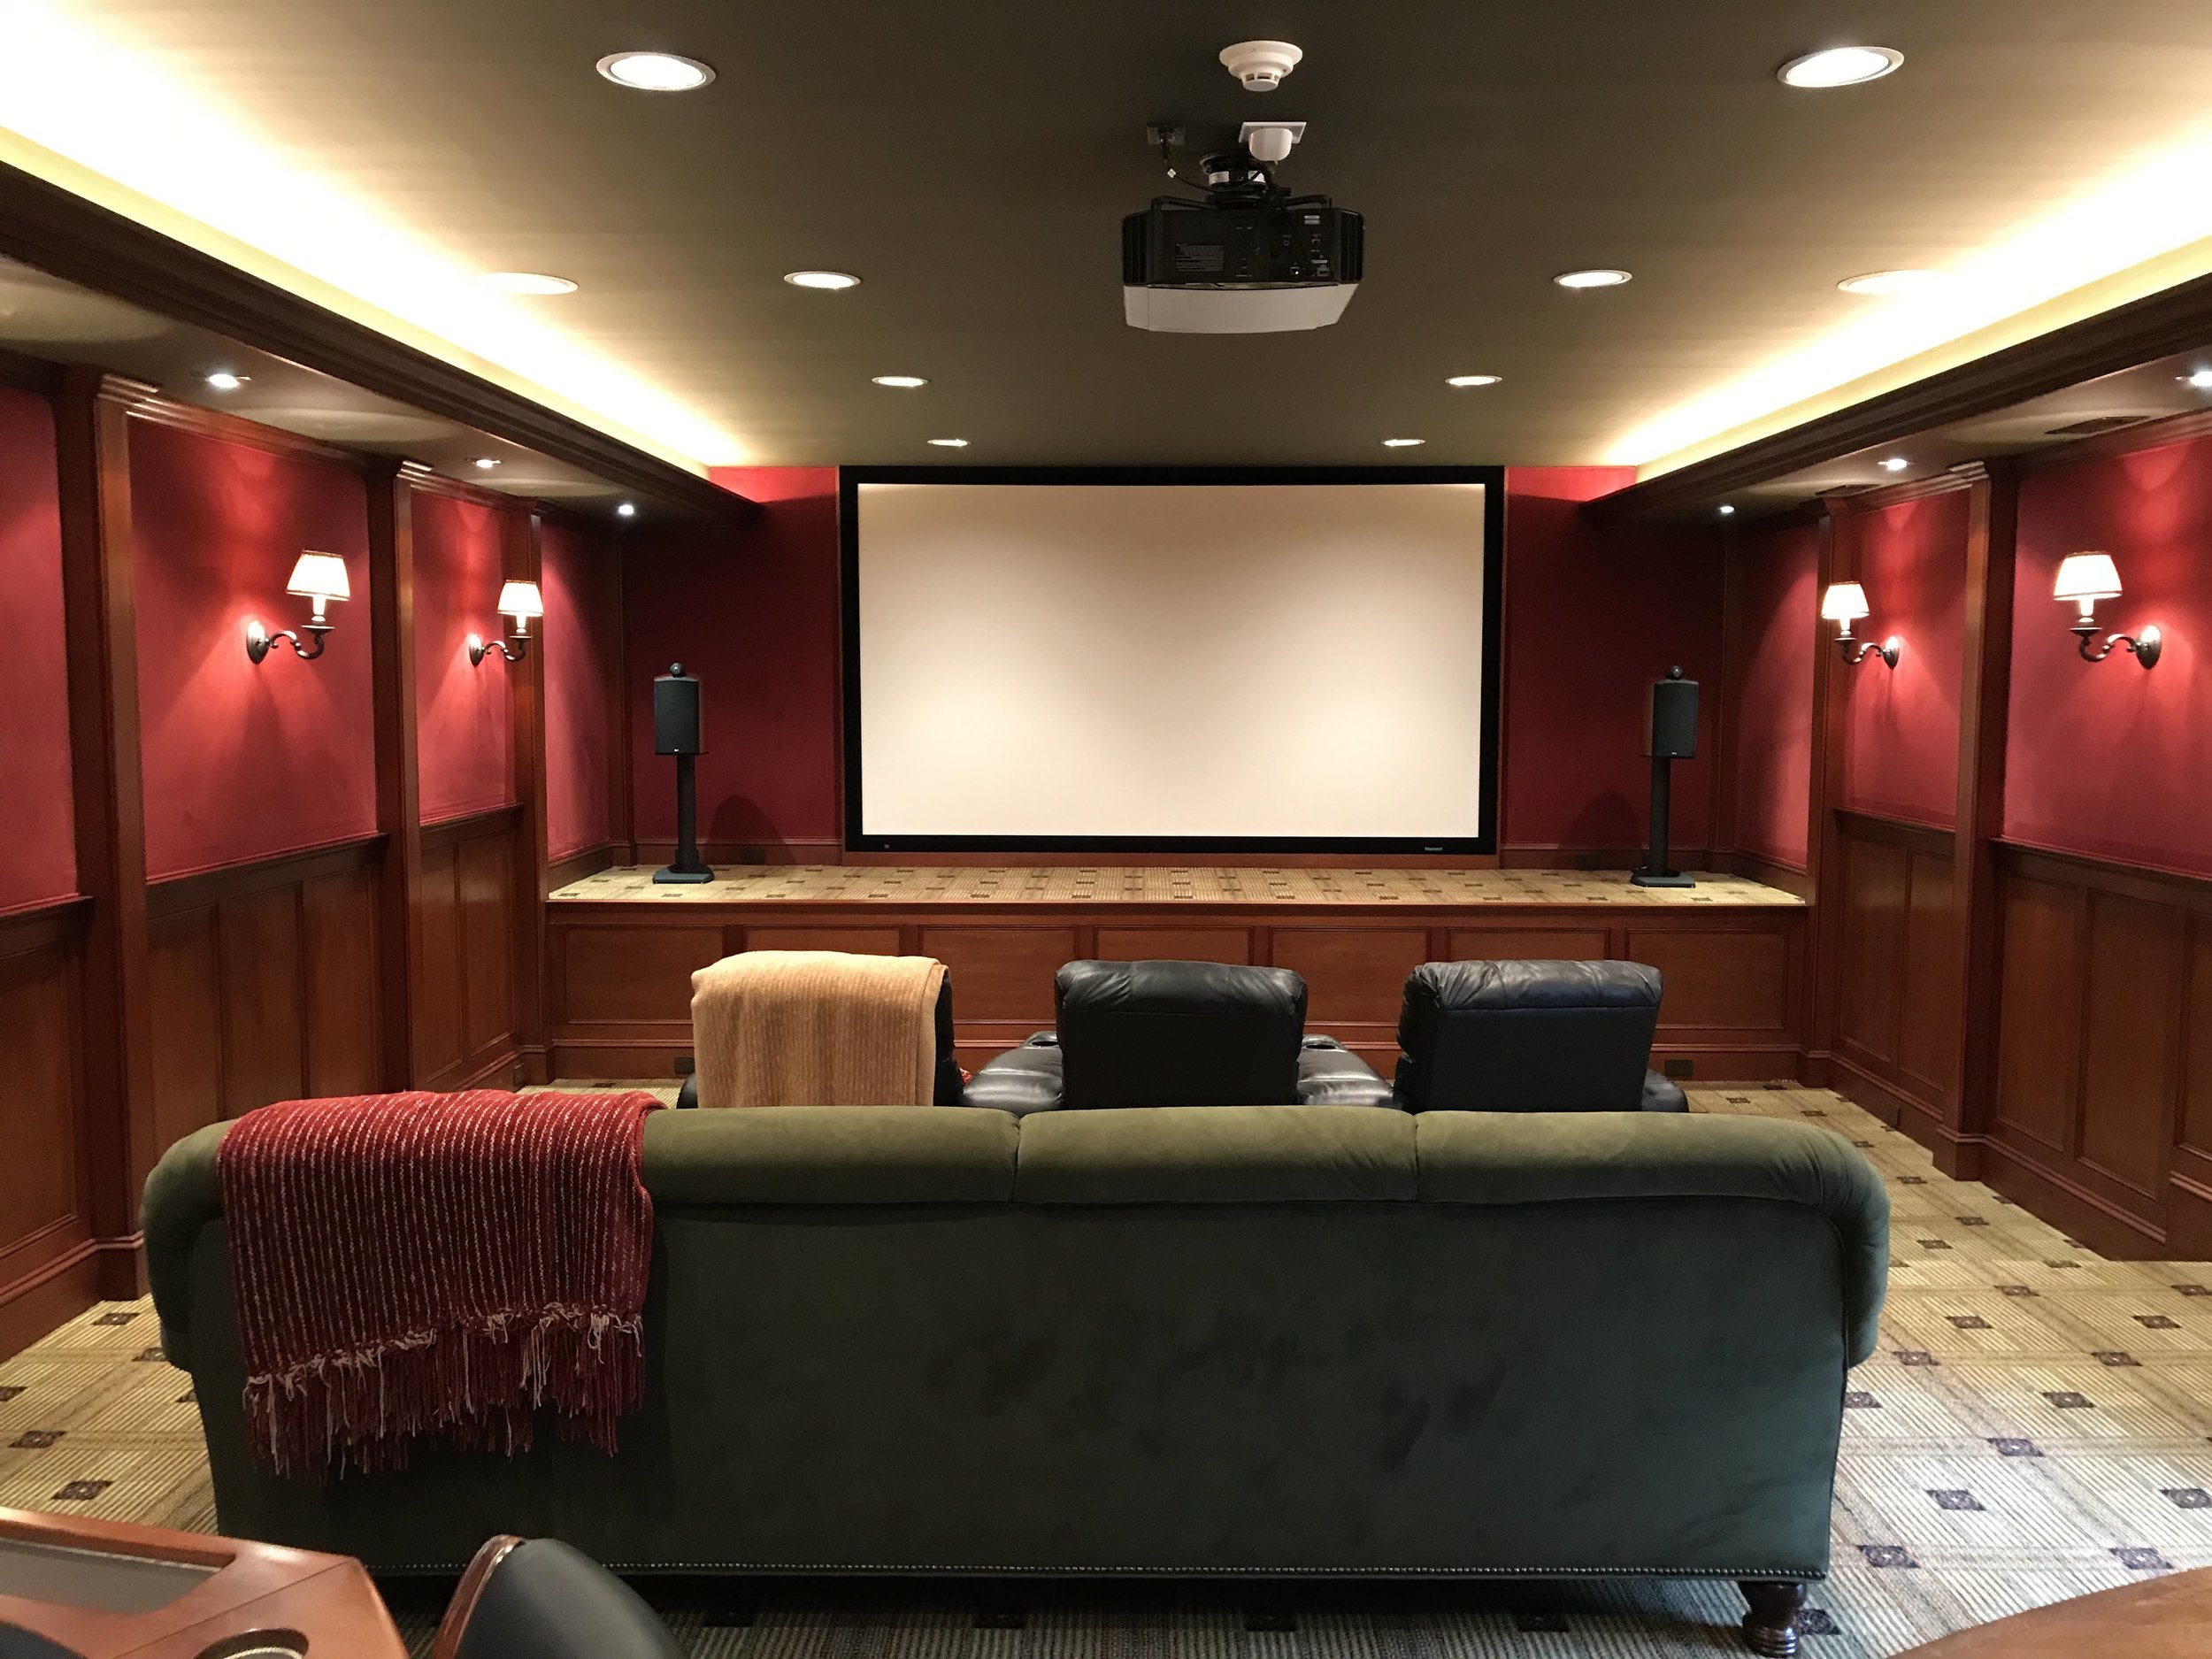 Home Theater Installation - Long Island, New York-min.JPG